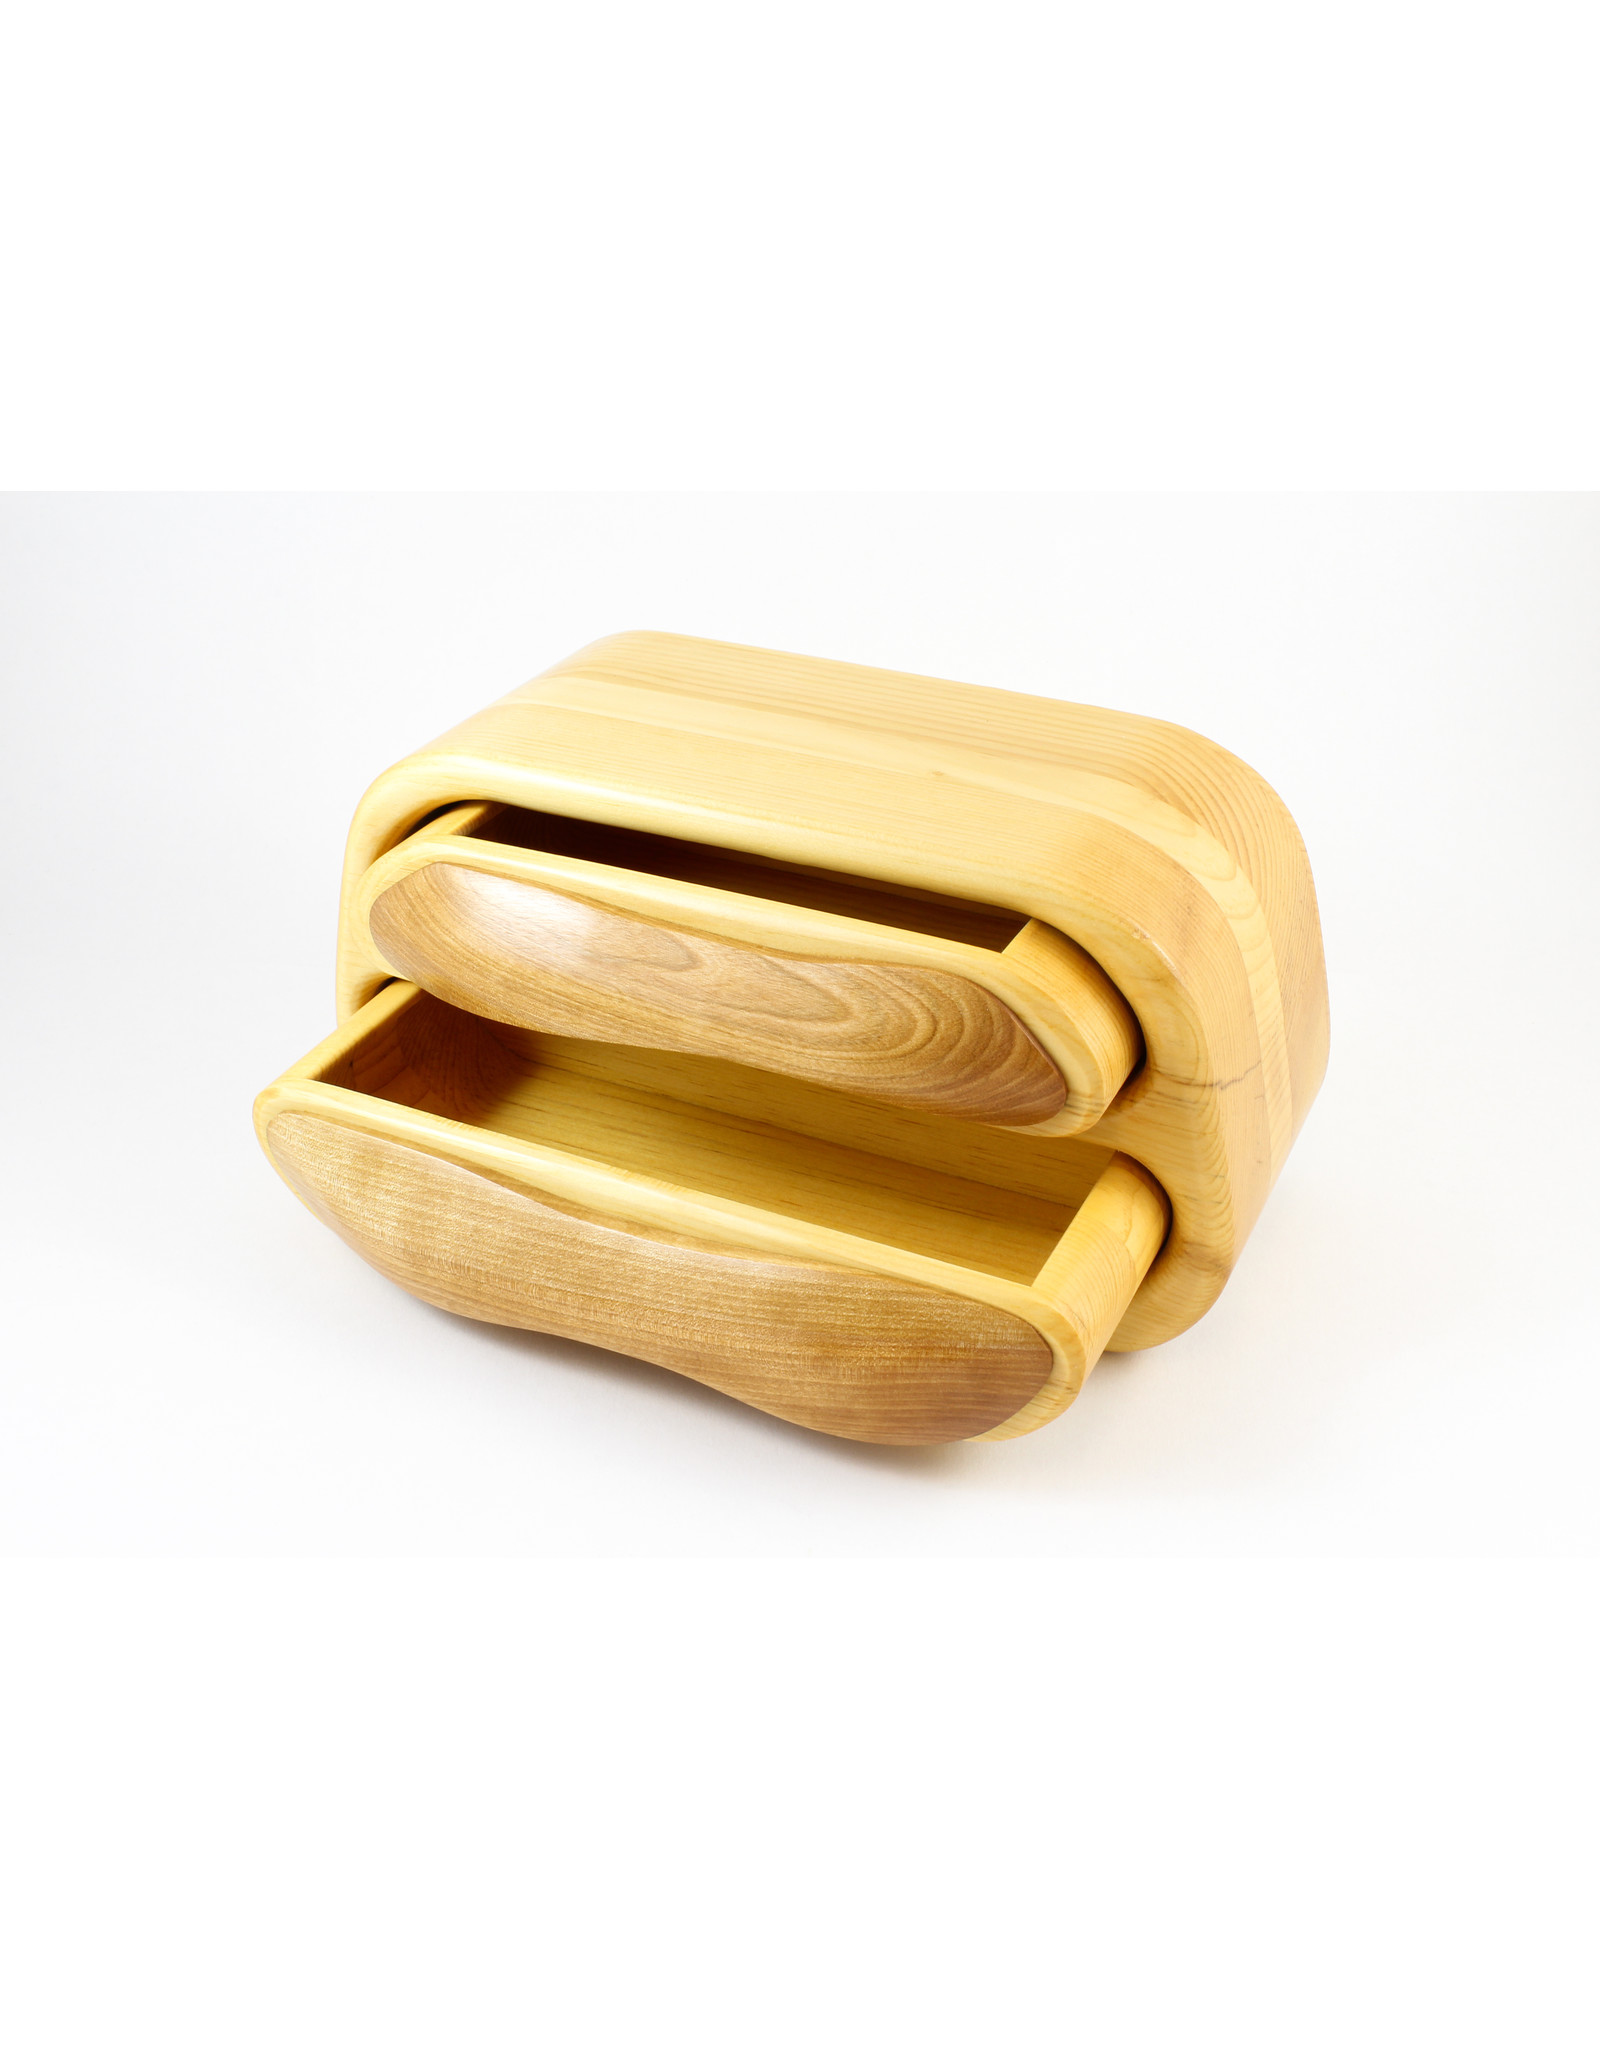 Robert Evans Long Two Drawer Box by Woodsmiths